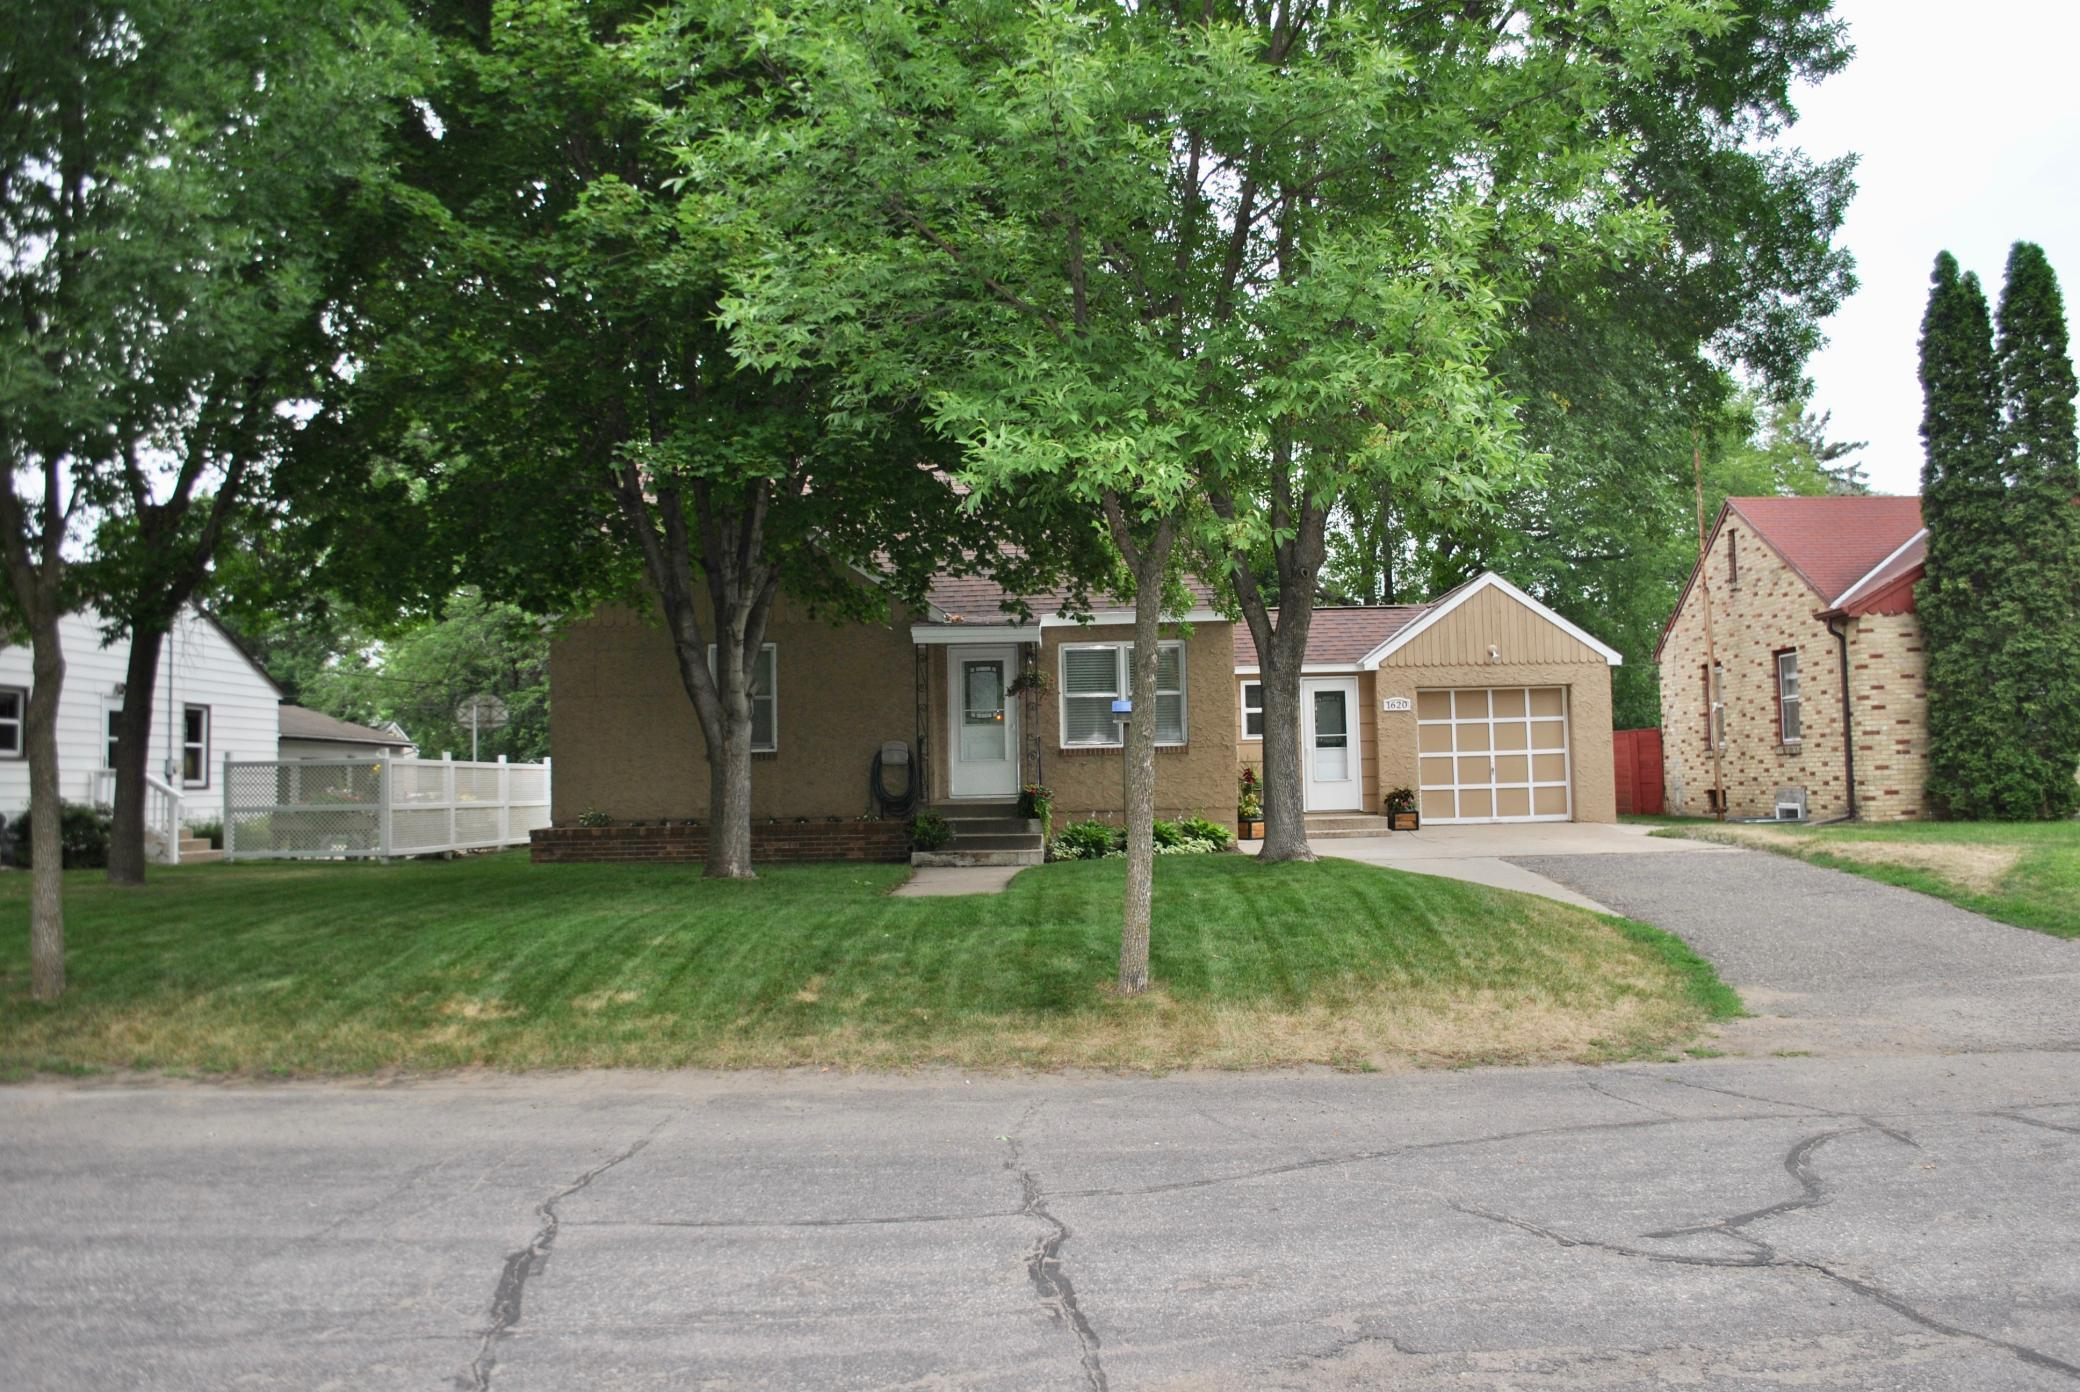 Buyers and Buyers agent to verify all measurements and information. Please enter door by garage. 5th bedroom could be added in basement with installing a closet.